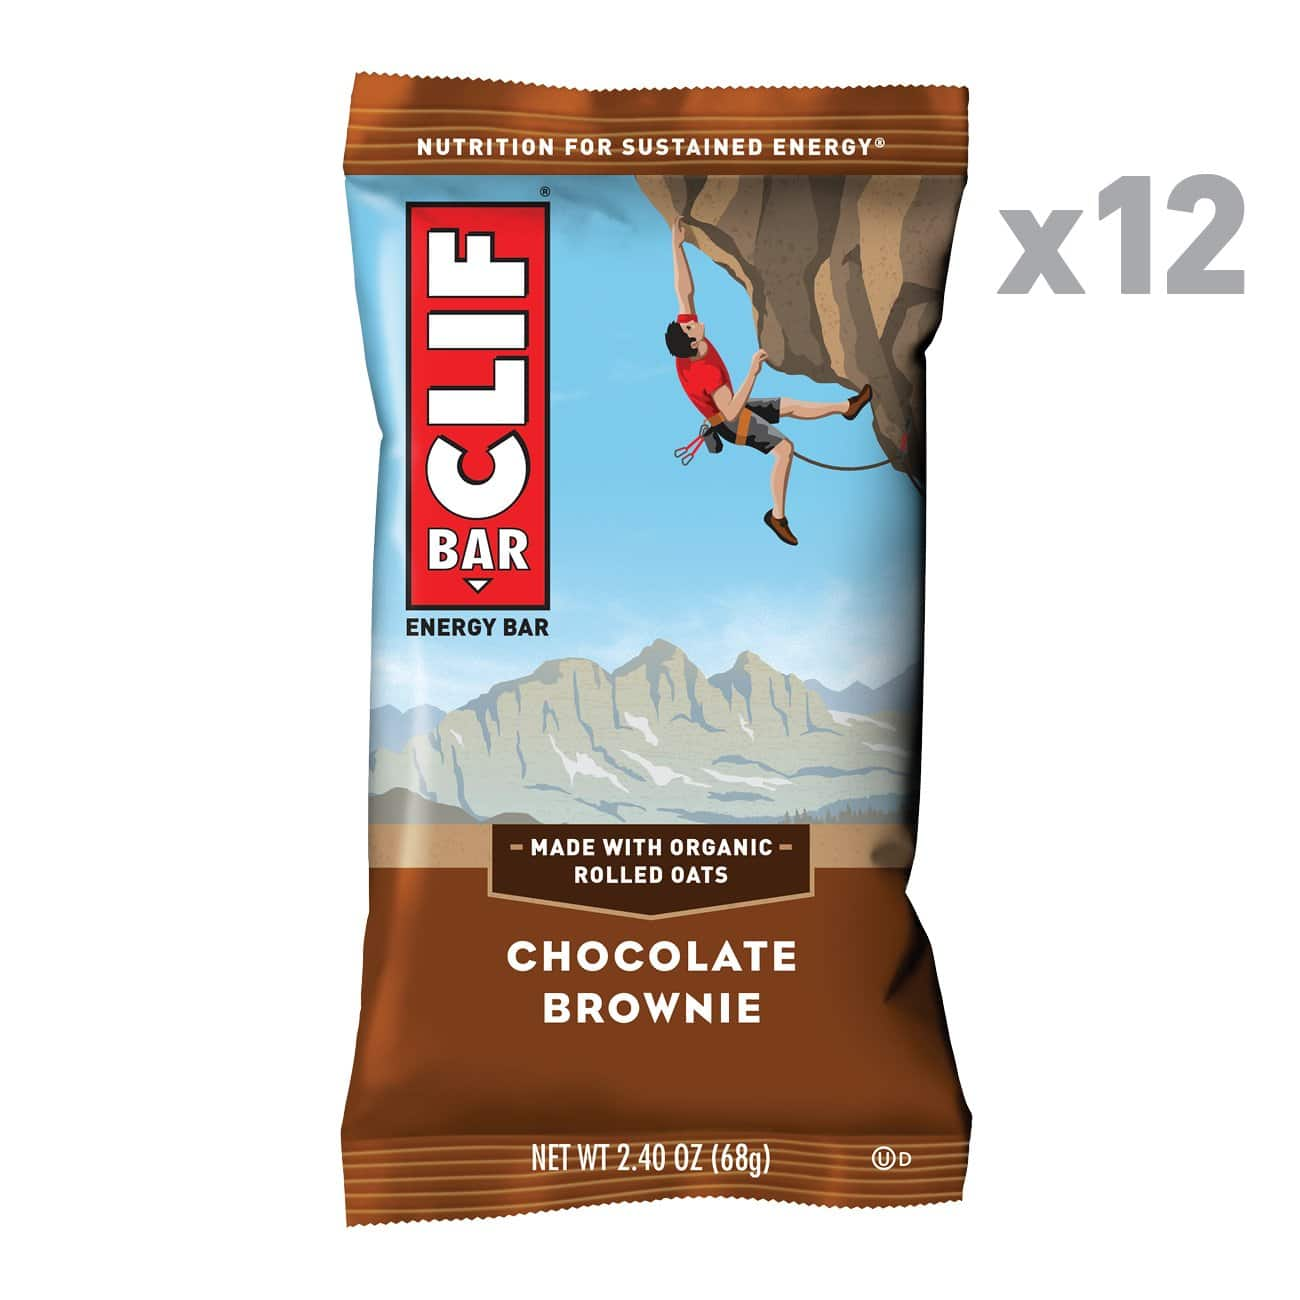 12-Count 2.4 oz. CLIF BAR - Energy Bars (Chocolate Brownie) for $8.70 with Coupon and S&S via Amazon